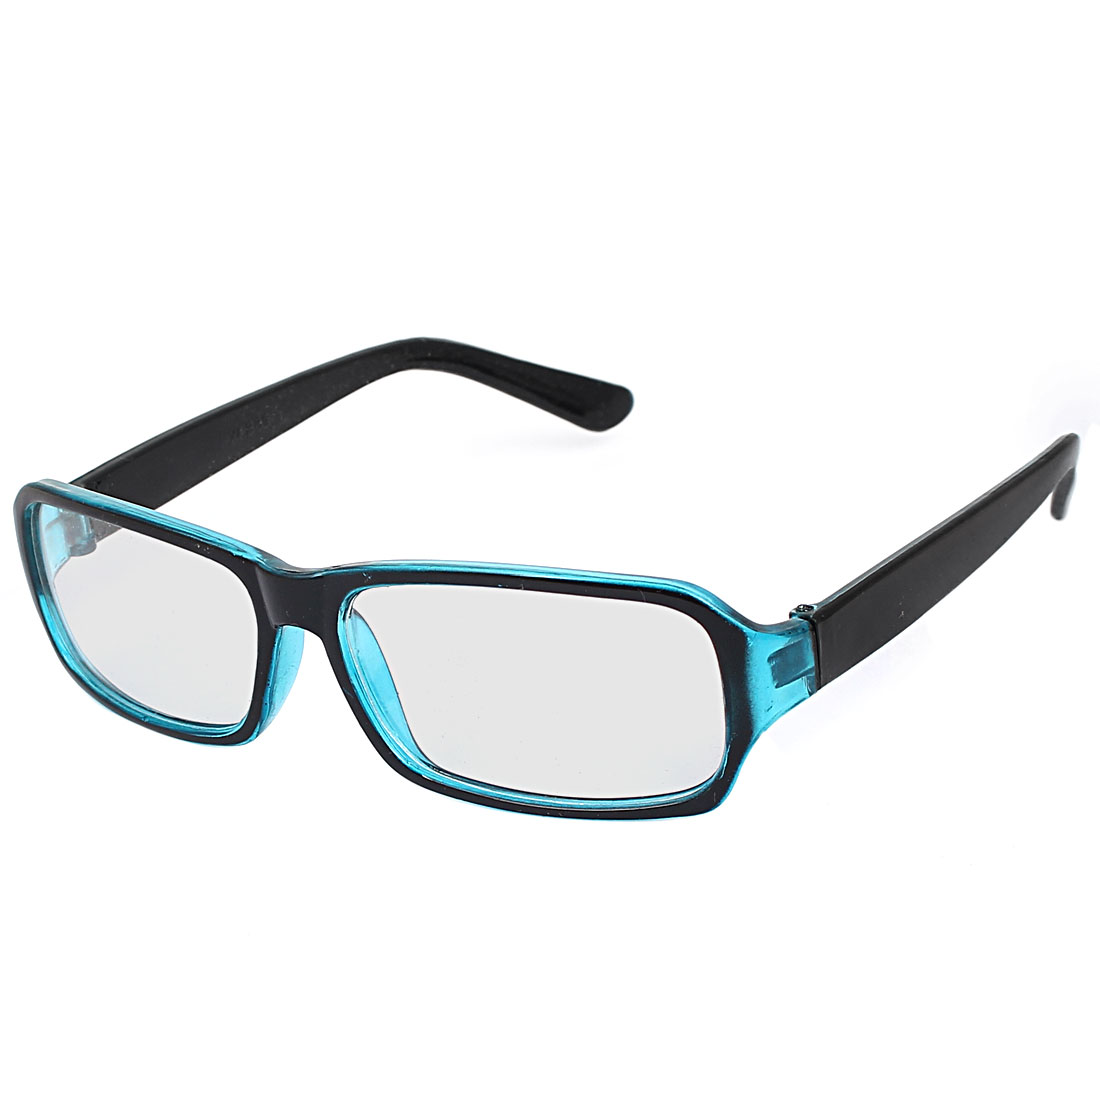 Unisex Square Lens Full Frame Eyewear Plain Plano Glasses Spectacles Black Blue